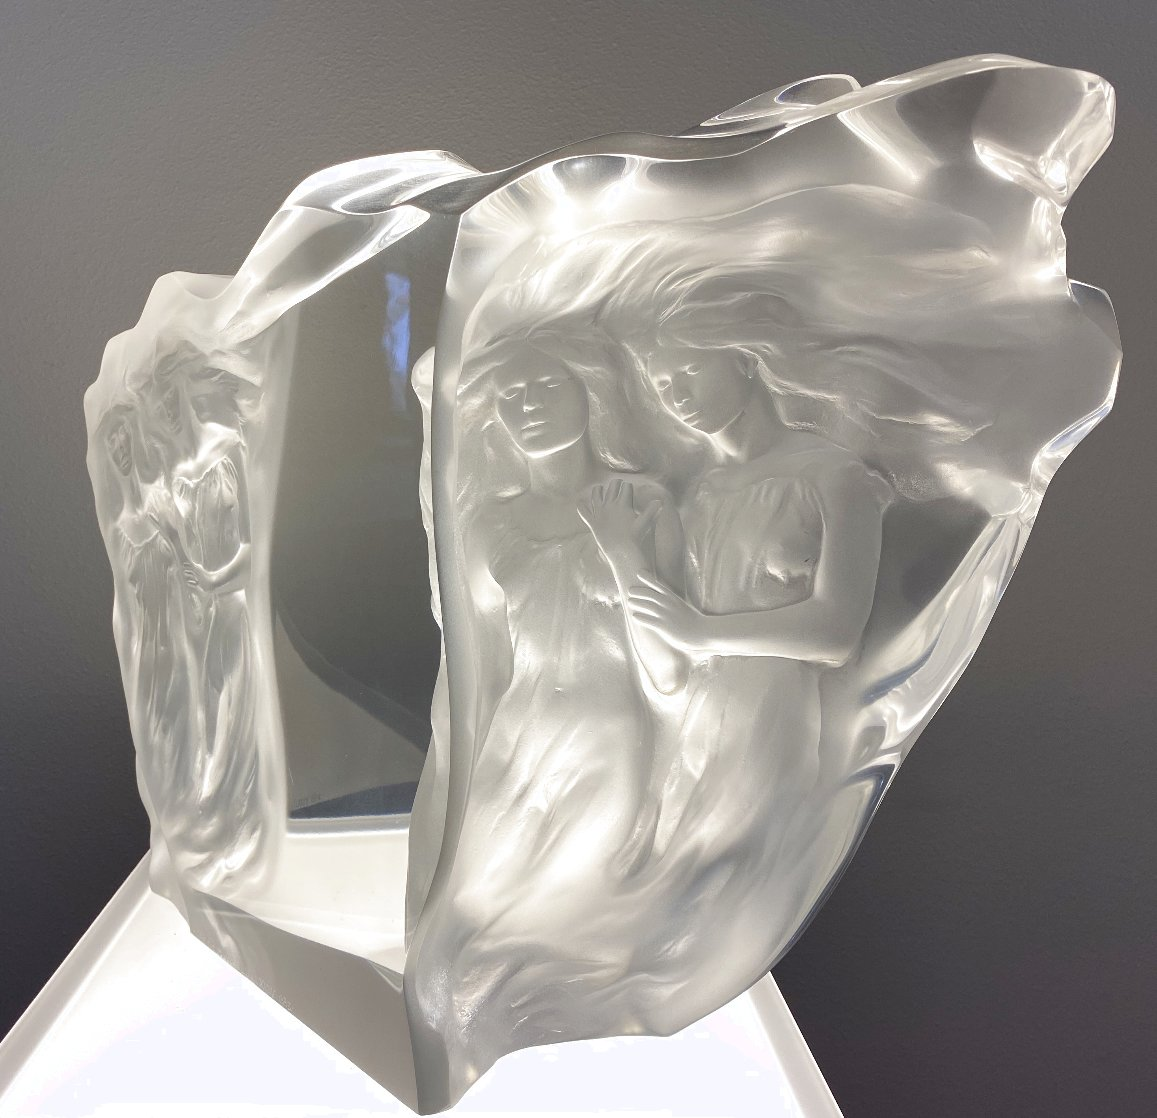 Illuminata Suite of 3 Arcylic Sculptures 15 in Sculpture by Frederick Hart